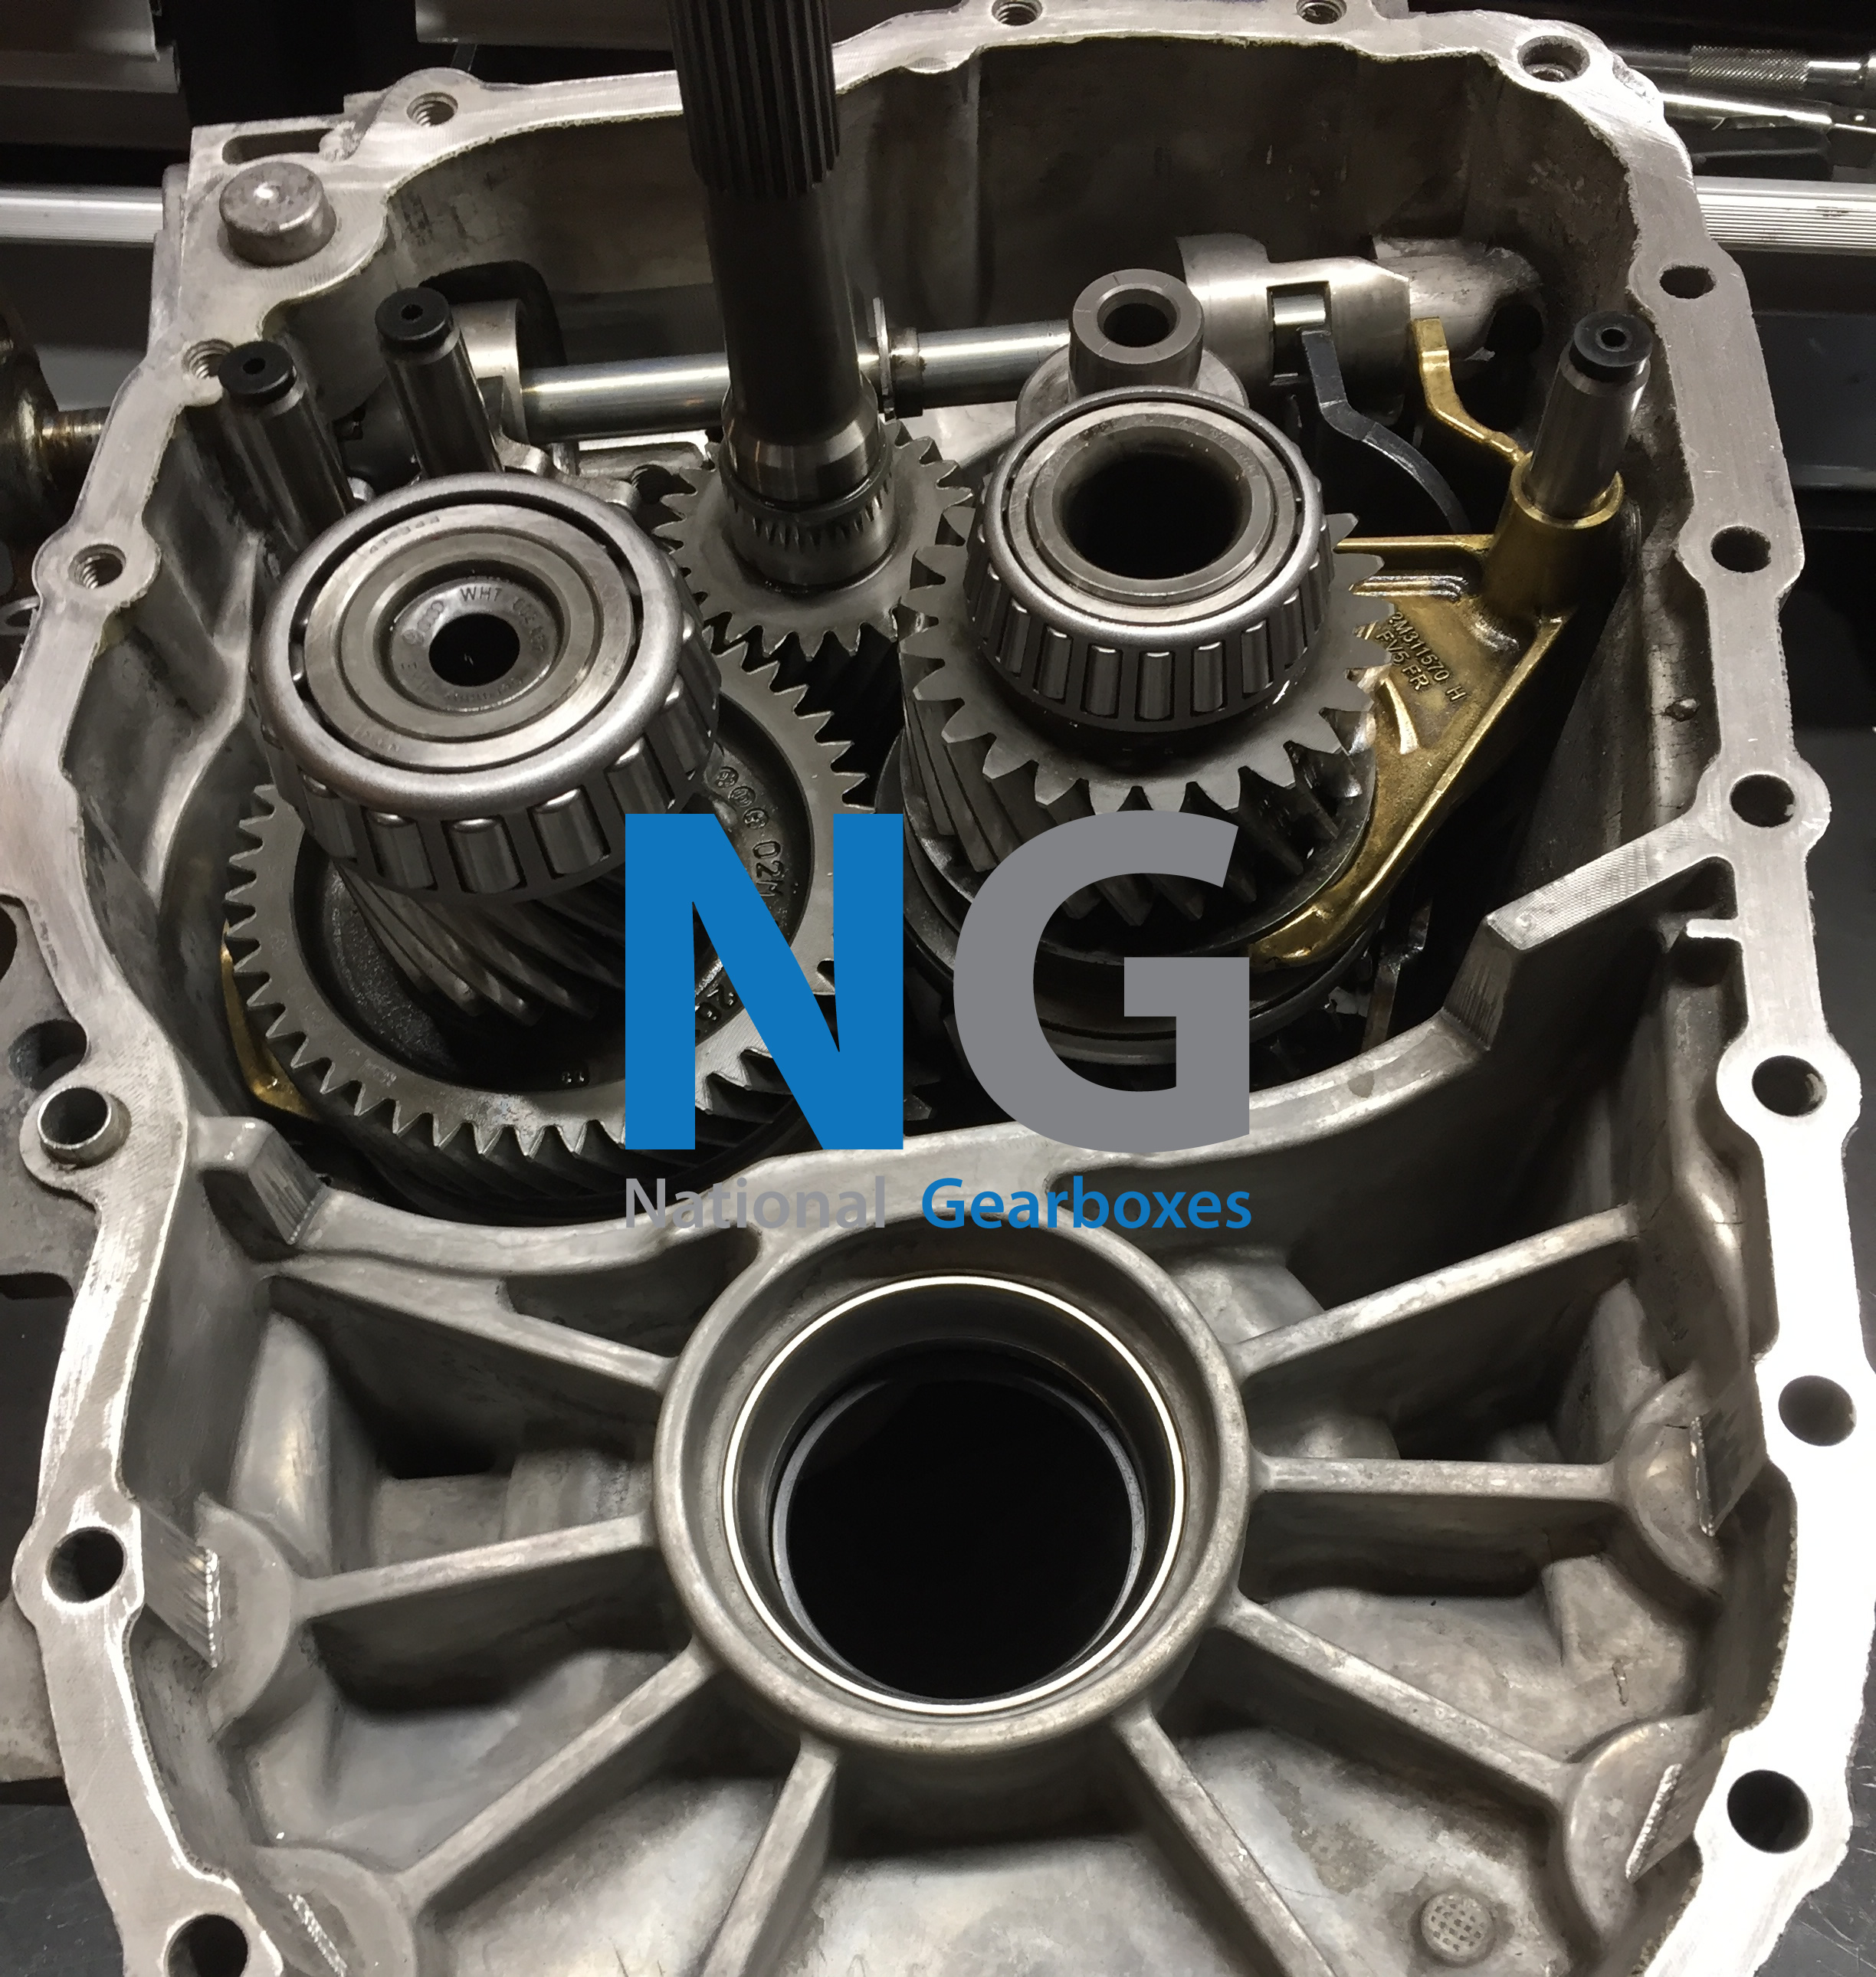 O2Q GEARBOX DURING REBUILD